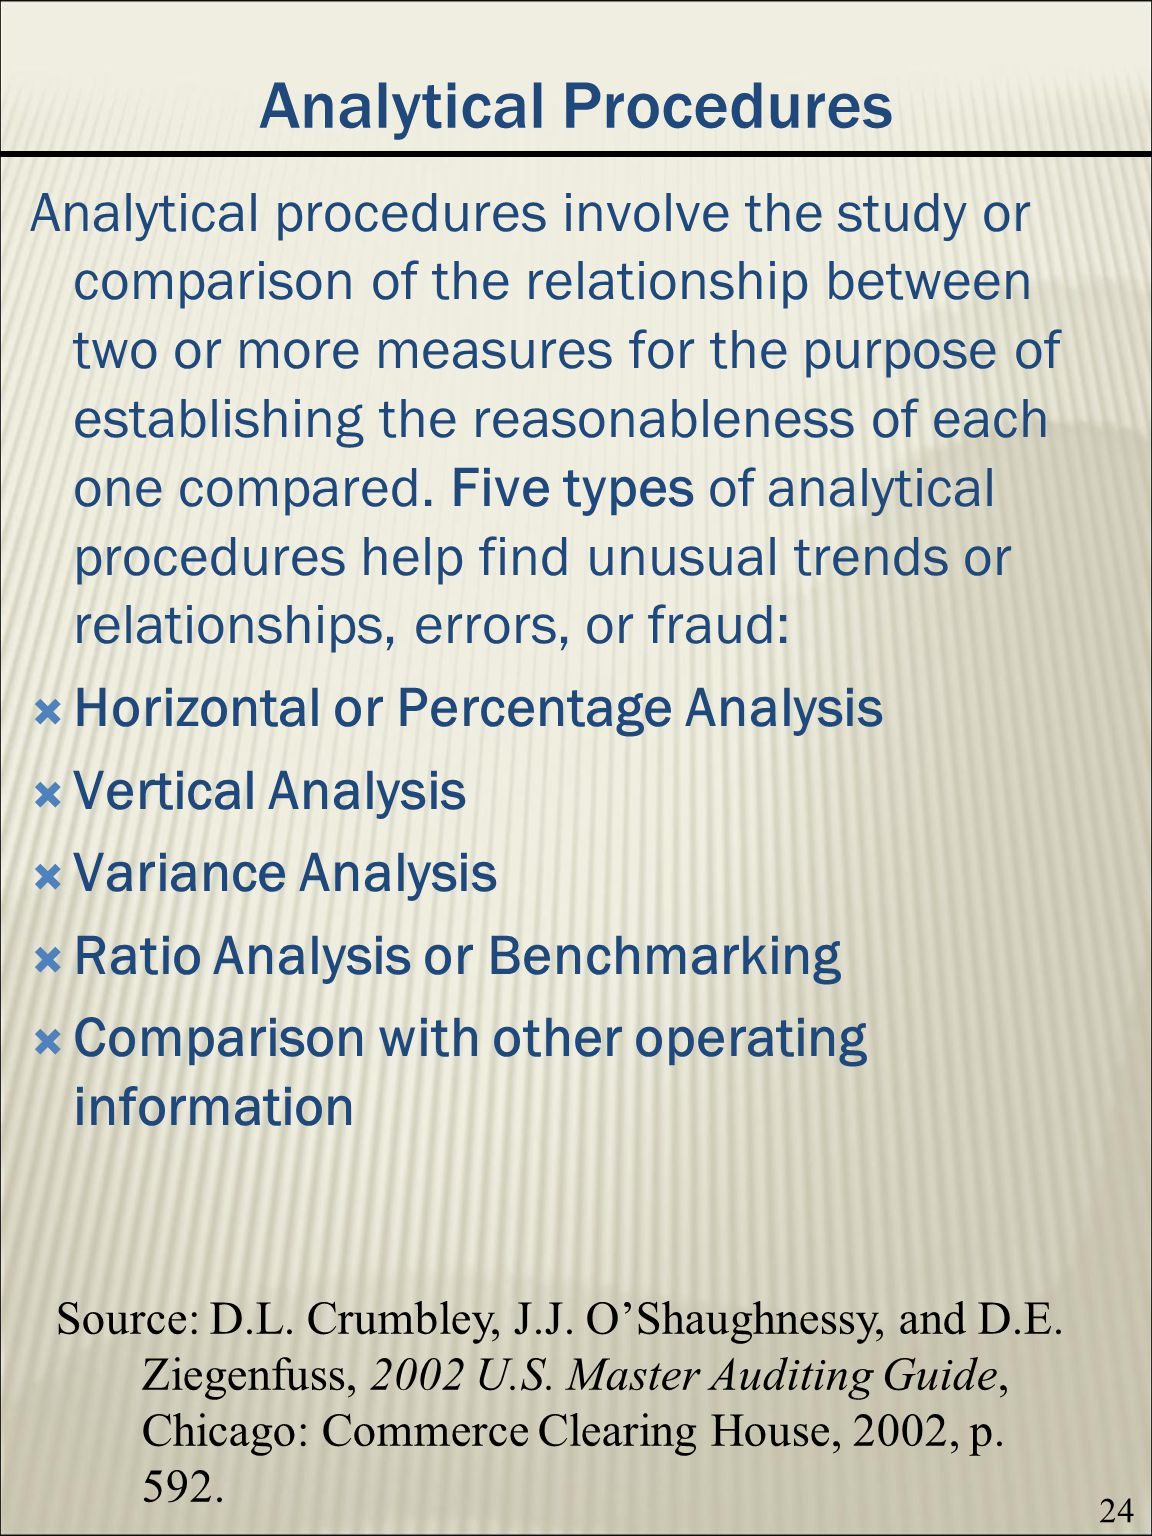 analytical procedures ratio analysis form The guide summarizes applicable requirements and practices, and delivers how-to advice for handling analytical procedures used in audits the included case study illustrates the use of analytical procedures in planning and substantive testing, utilizing trend analysis, ratio analysis, reasonableness testing, and regression analysis.